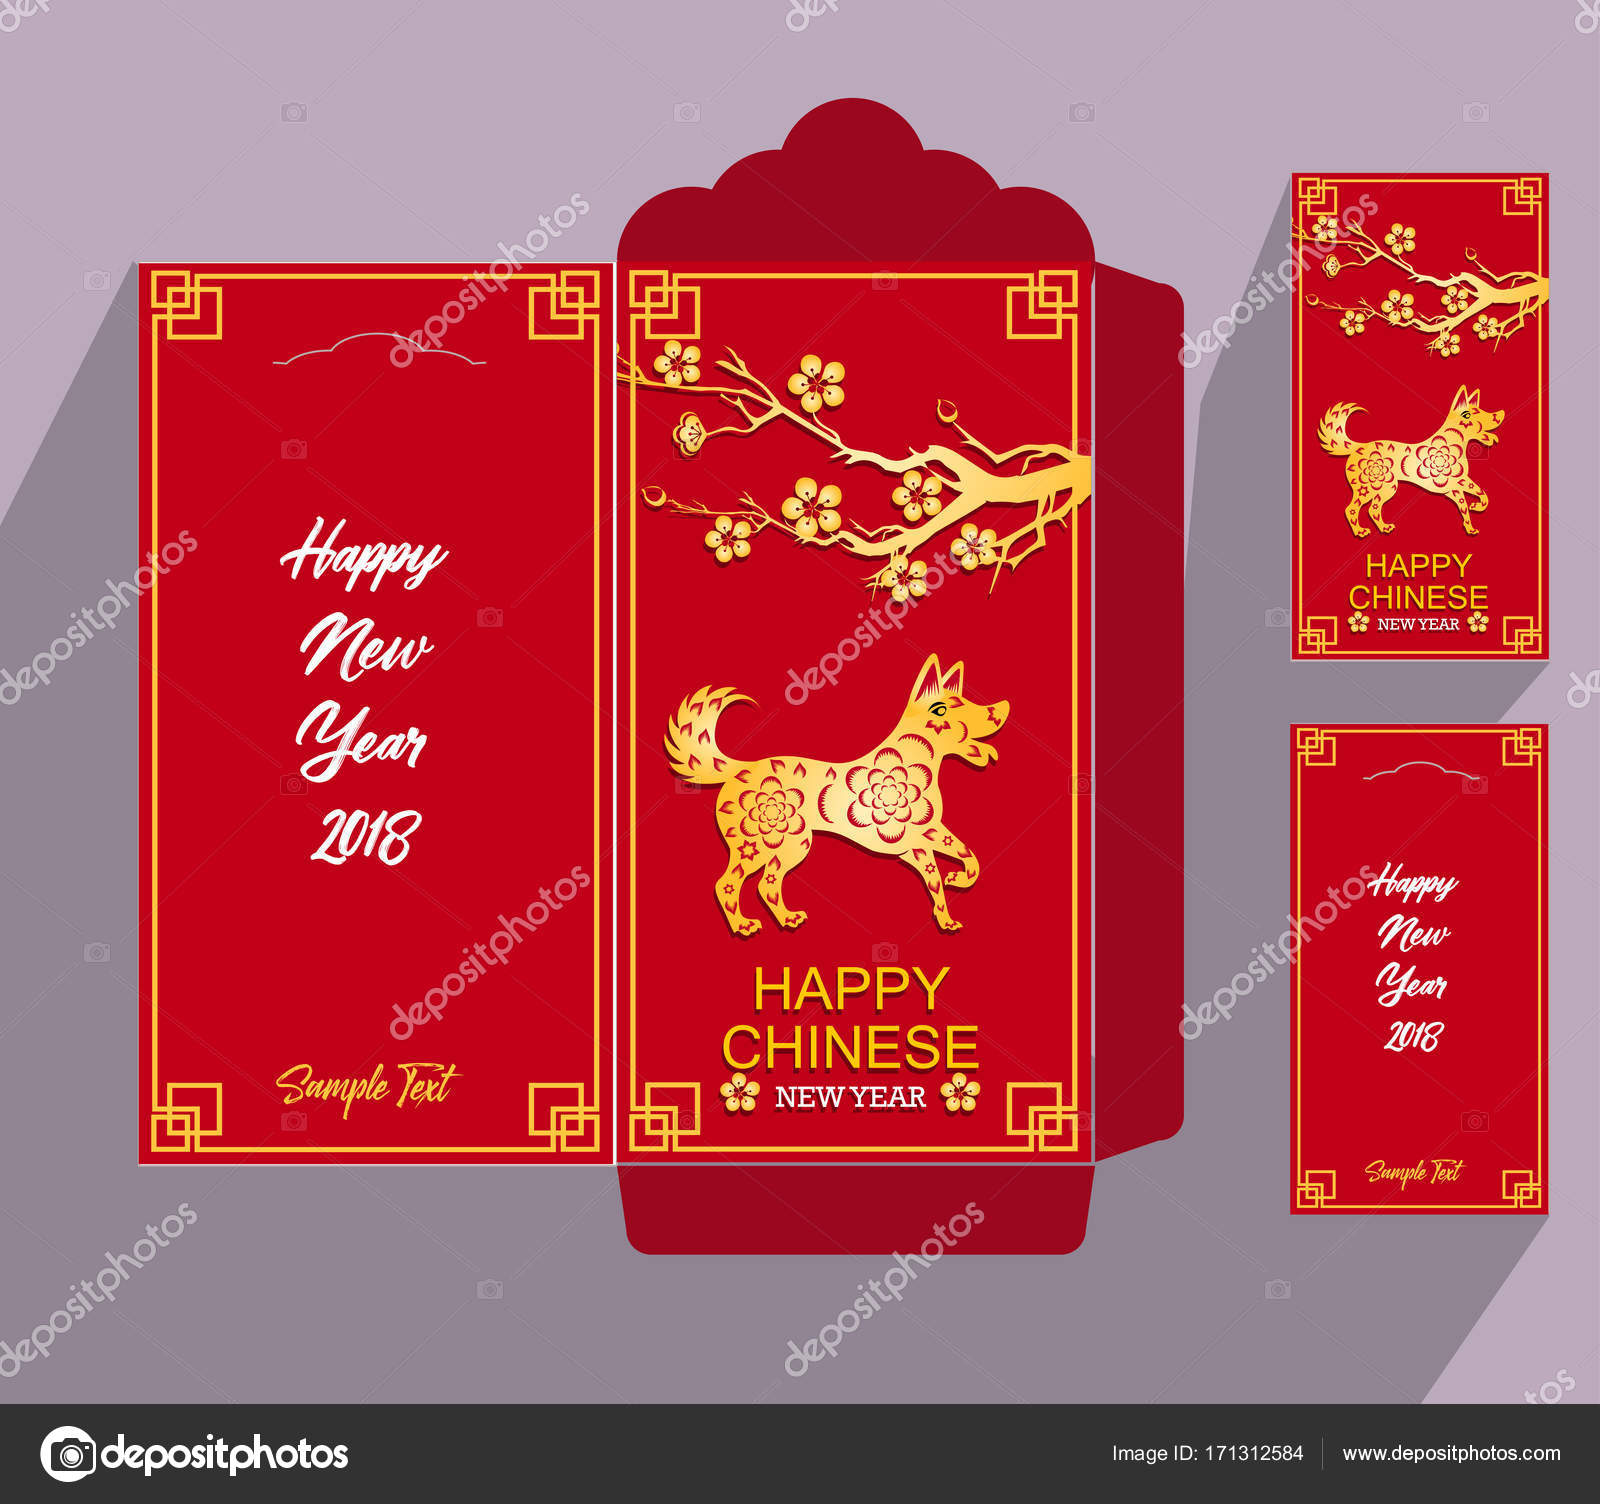 chinese new year red envelope flat icon year of the dog 2018 stock vector - Red Envelopes Chinese New Year